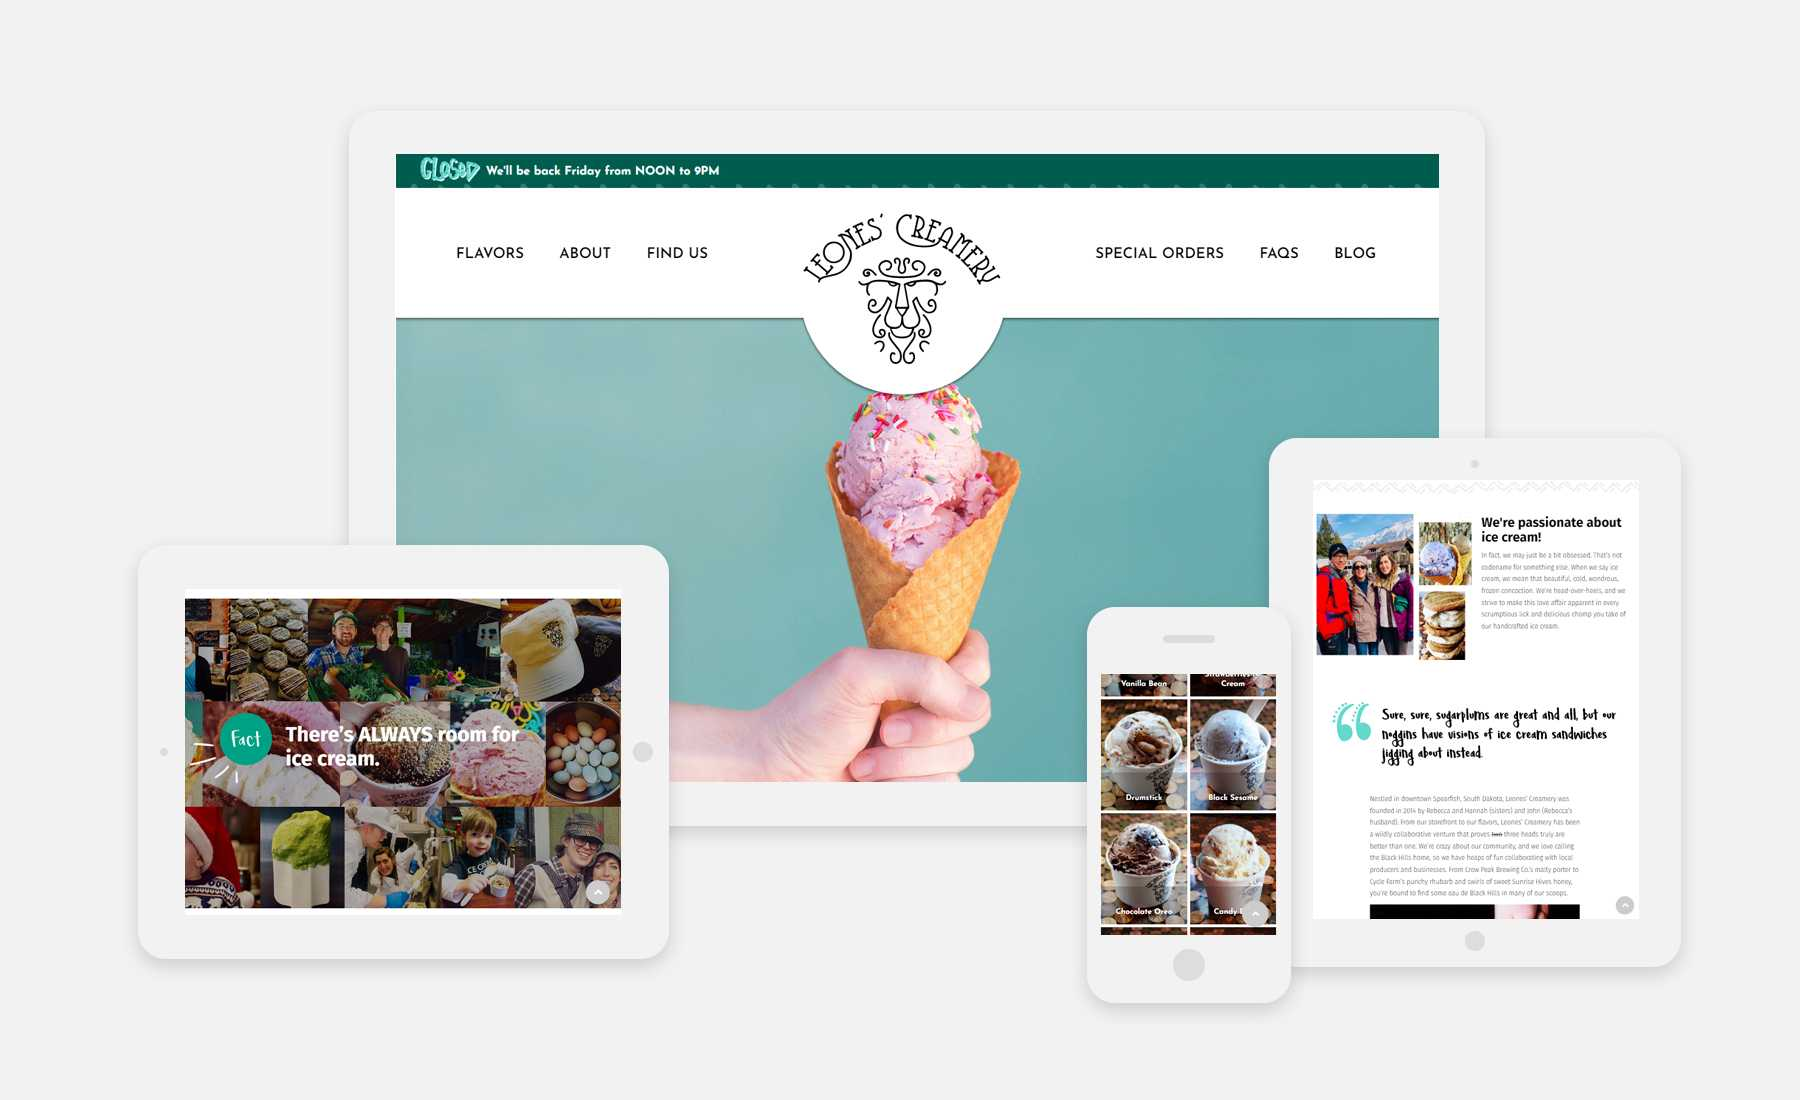 Leones' Creamery website on 4 devices: desktop, ipad vertical, ipad landscape, and mobile